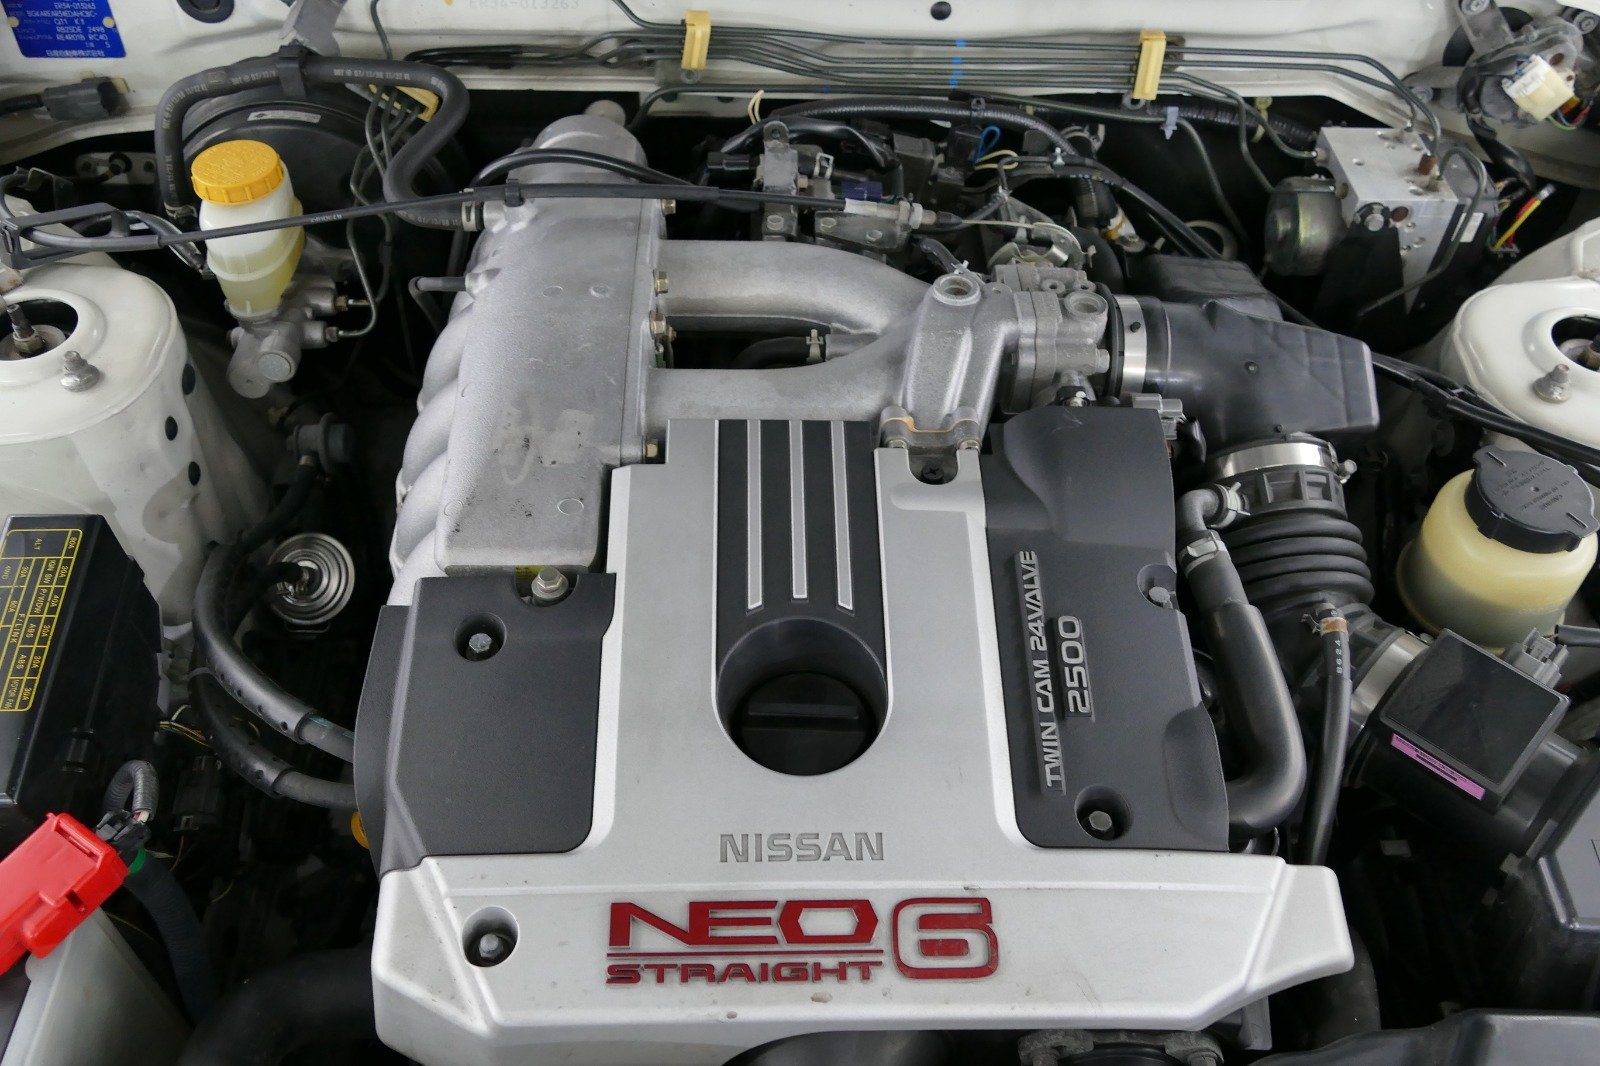 1998 Nissan Skyline R34 4 door Non Turbo Tiptronic For Sale (picture 5 of 6)